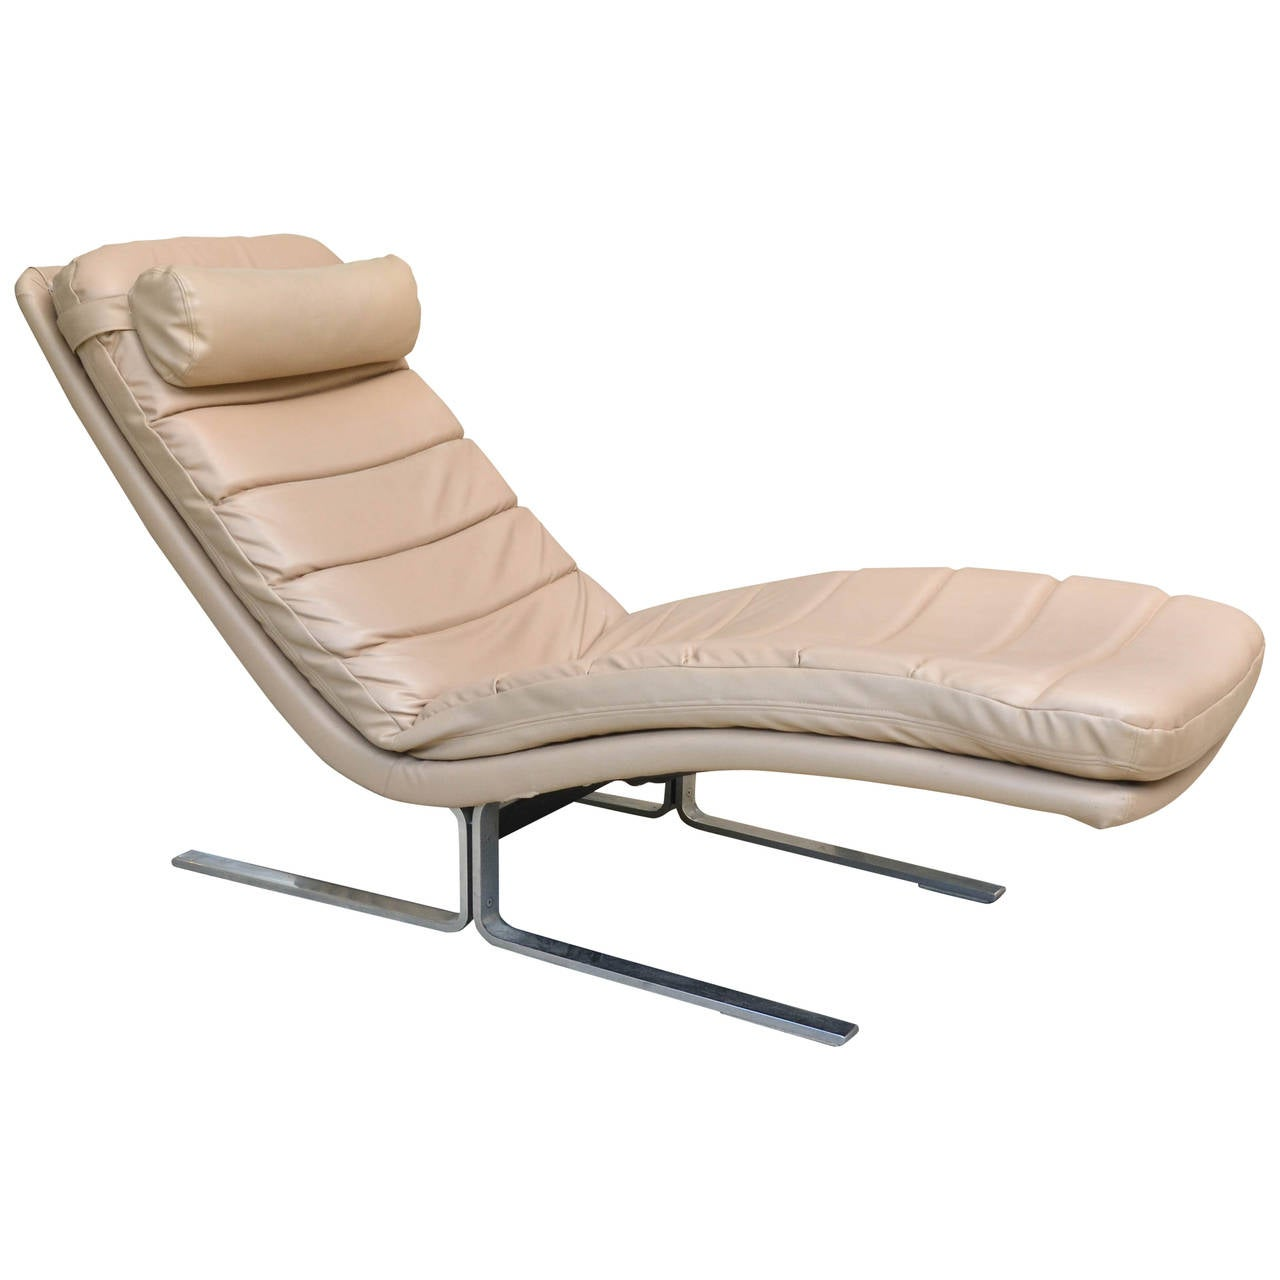 Harvey probber chaise longue at 1stdibs for Chaise longue furniture